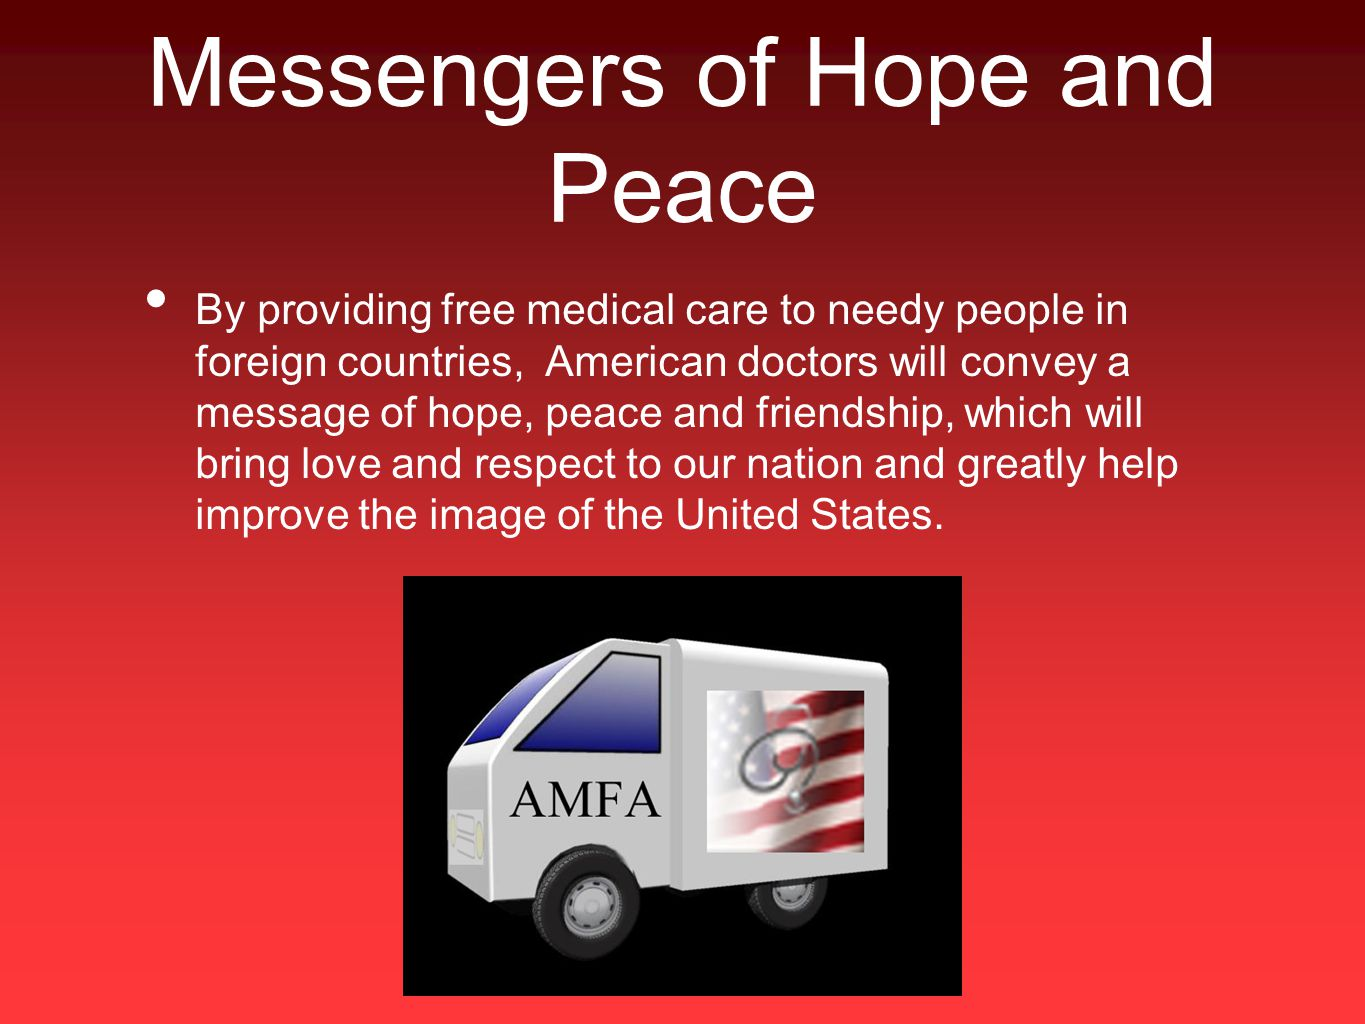 Messengers of Hope and Peace By providing free medical care to needy people in foreign countries, American doctors will convey a message of hope, peace and friendship, which will bring love and respect to our nation and greatly help improve the image of the United States.